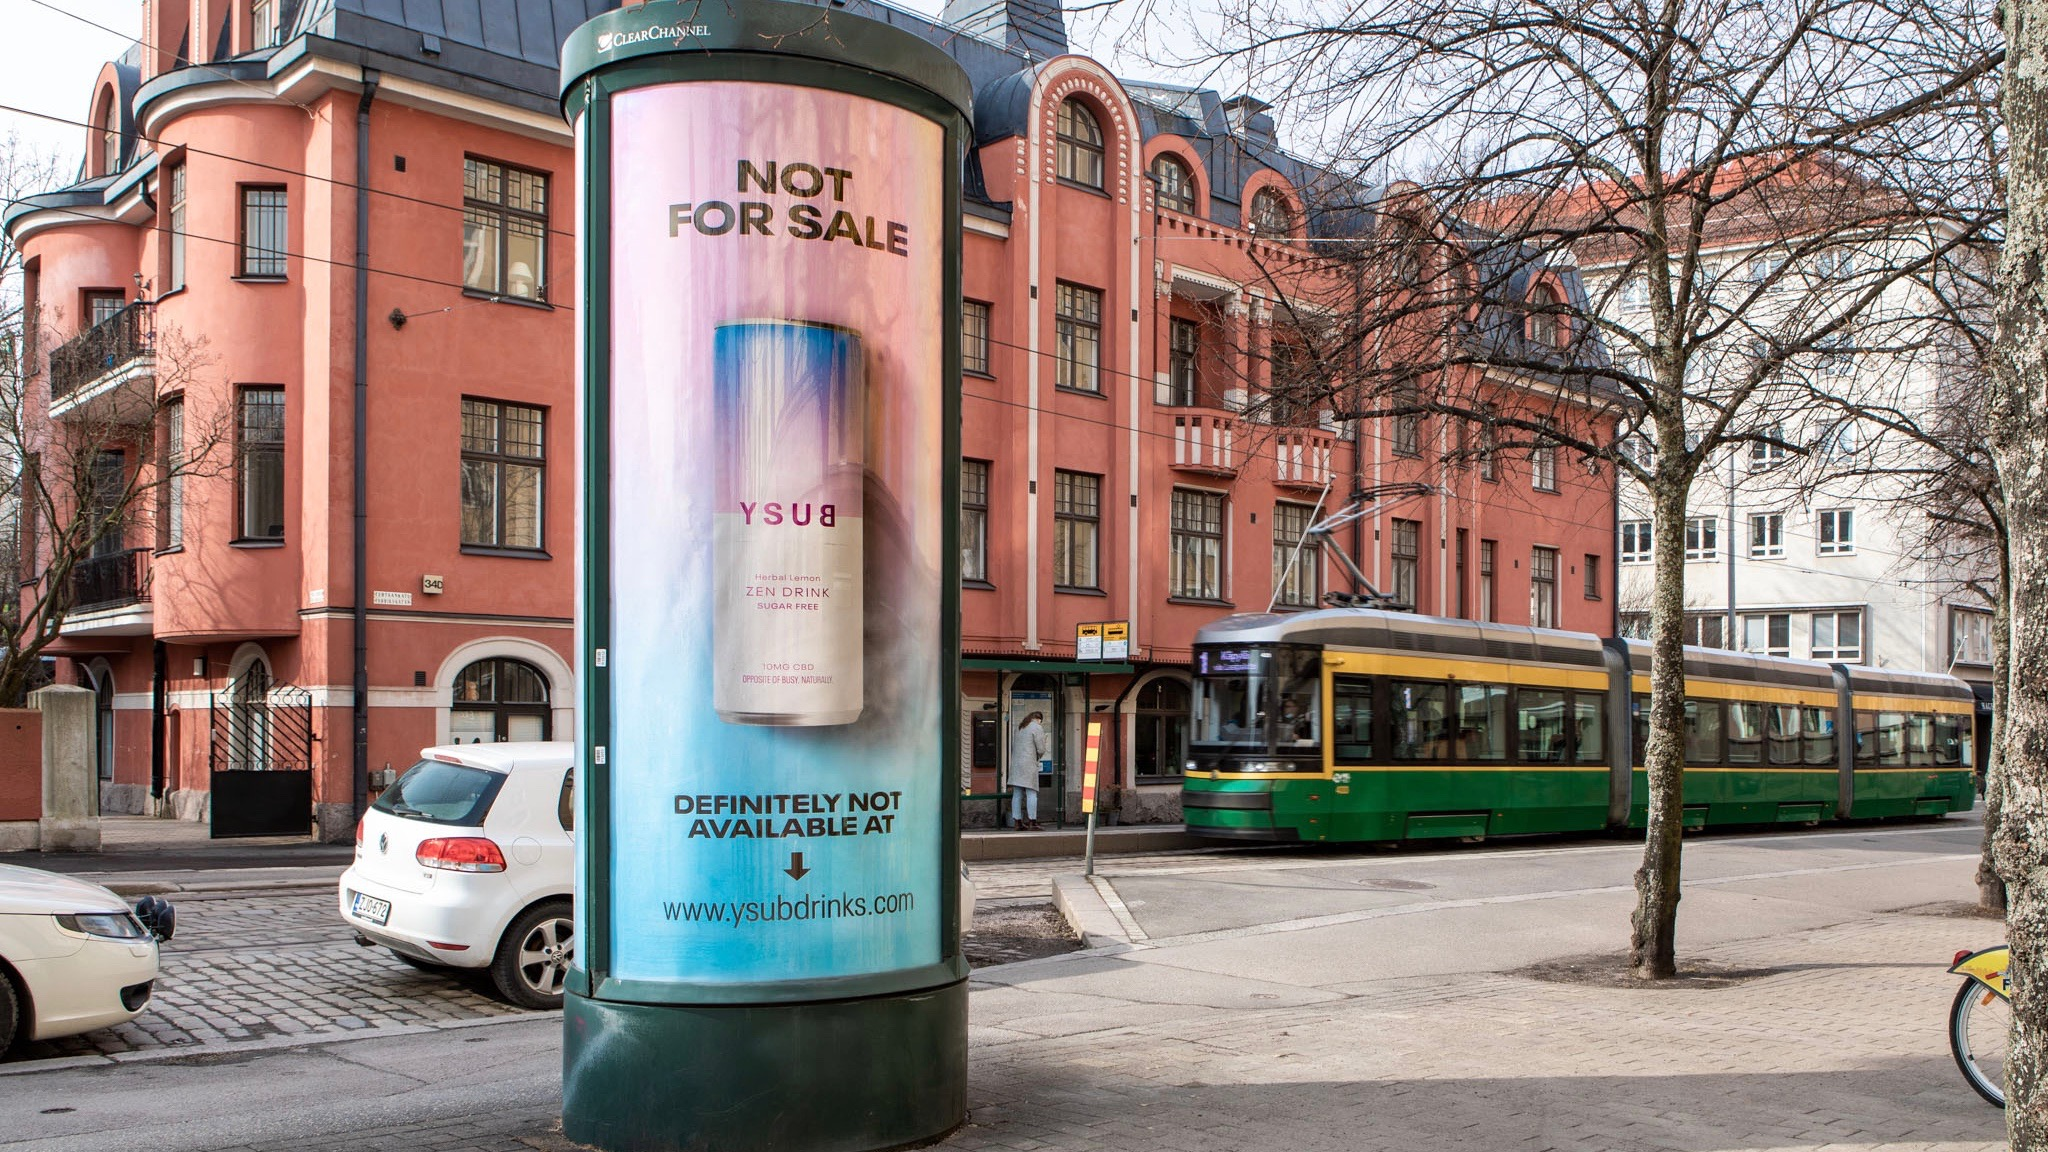 A cylinder-shaped outdoor ad on a street corner in Finland for CBD drink YSUB shows a can of the drink and says it's not for sale